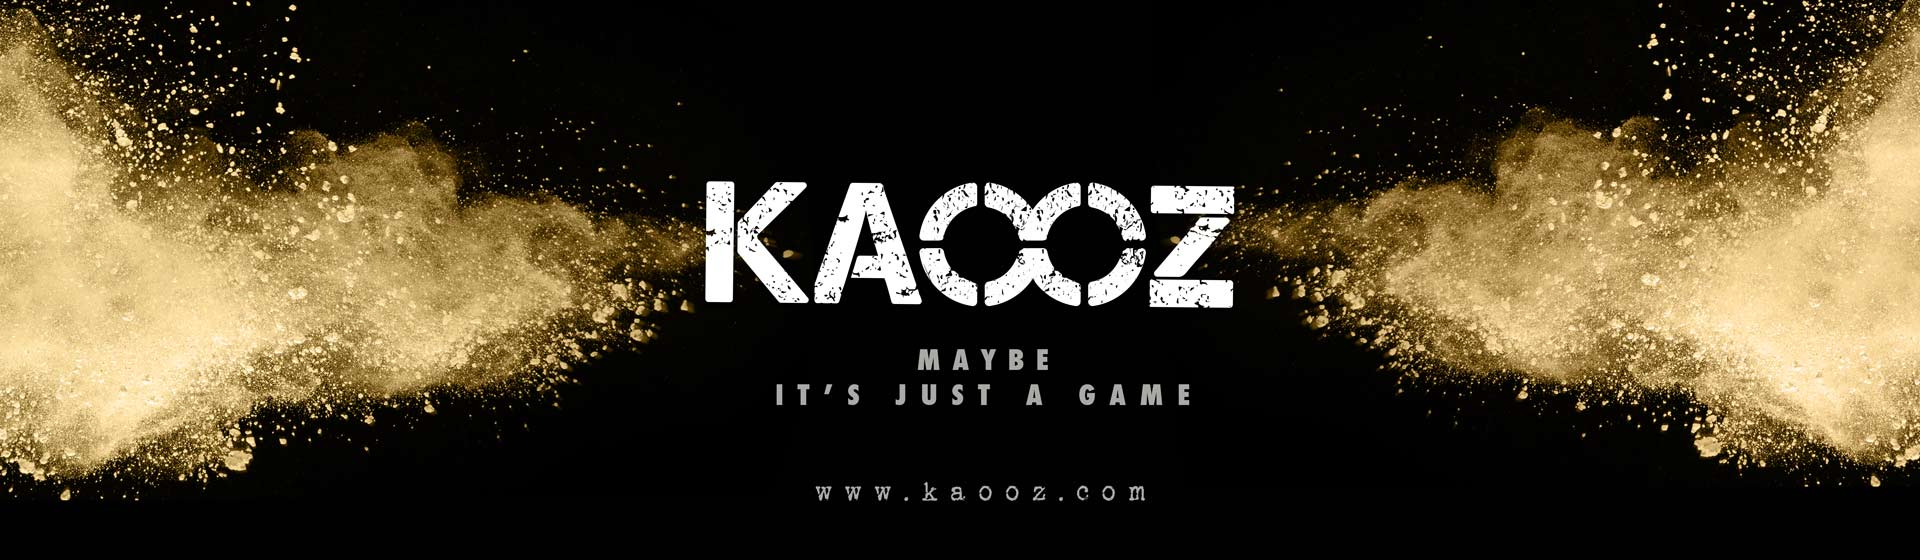 Kaook Brand logo design